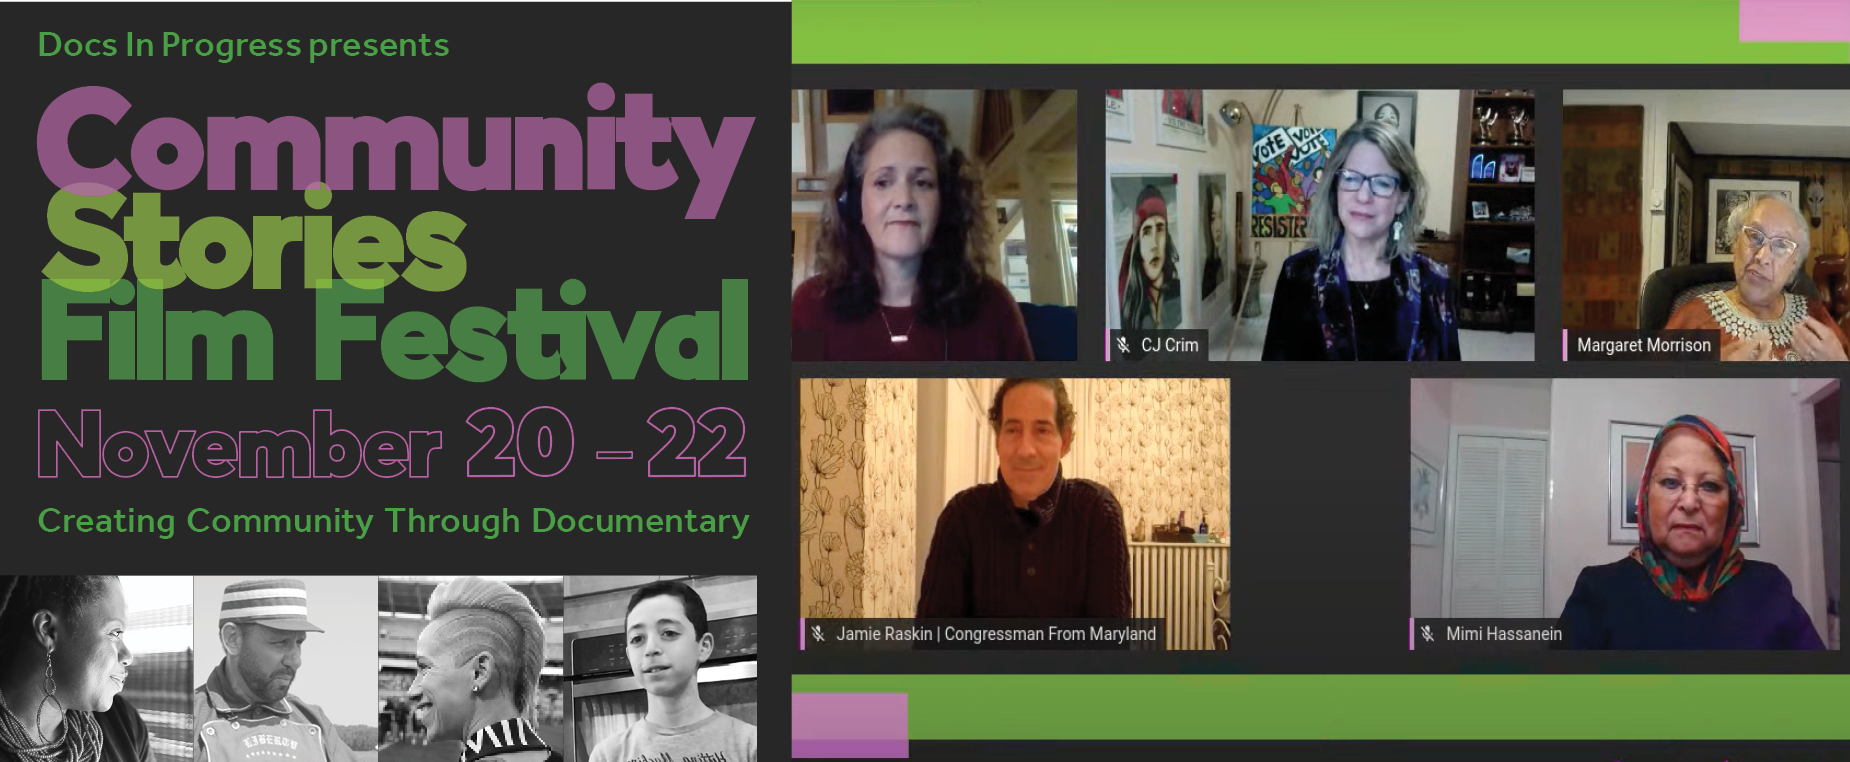 Community Stories Film Festival Graphic with zoom image of panel with Jamie Raskin and Filmmakers of Resisterhood.